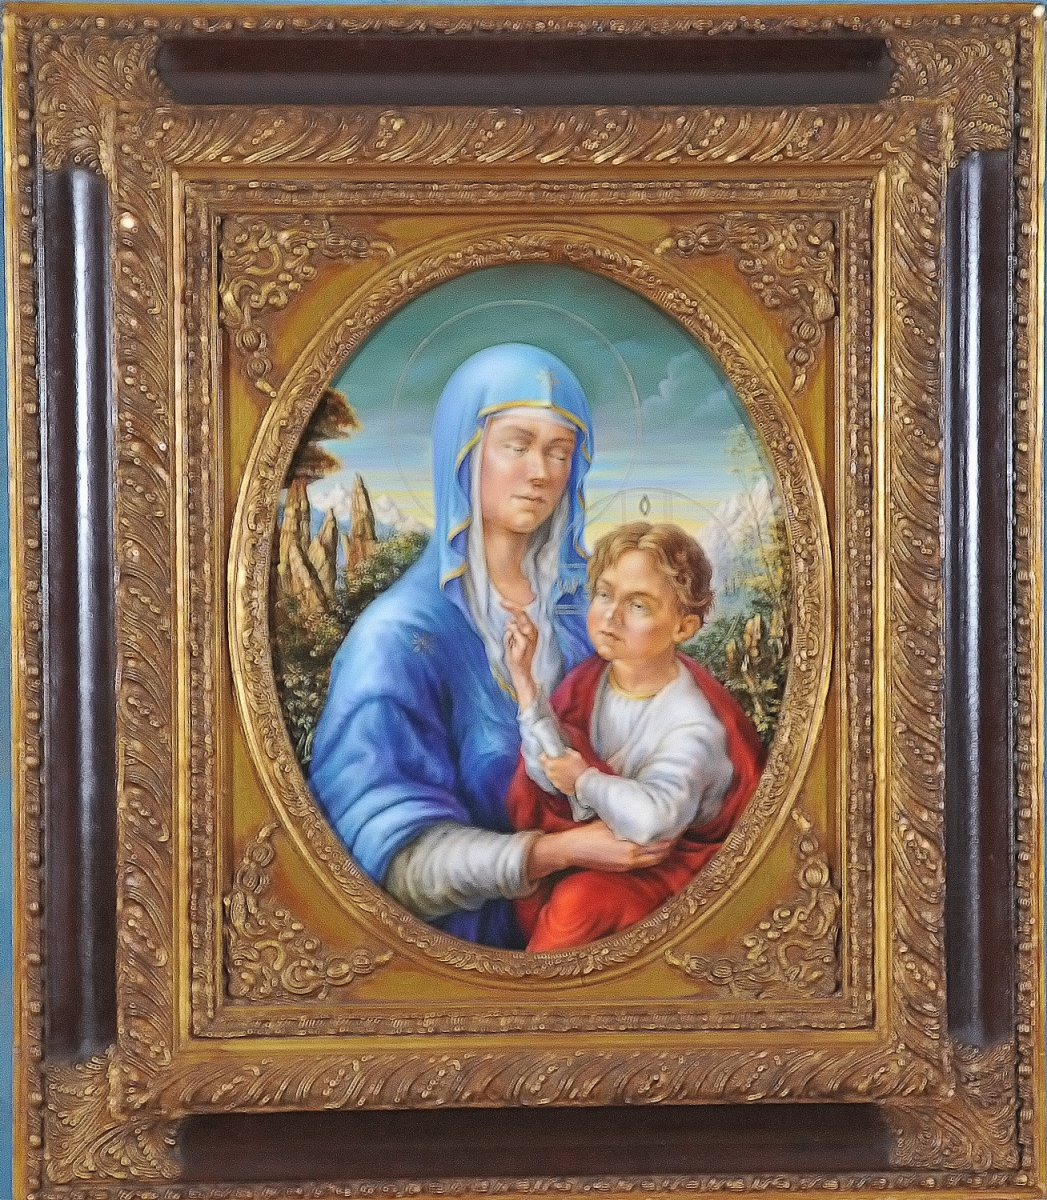 Madonna with Child (framed) painting 43,5cm x 34cm - Alexander Donskoi